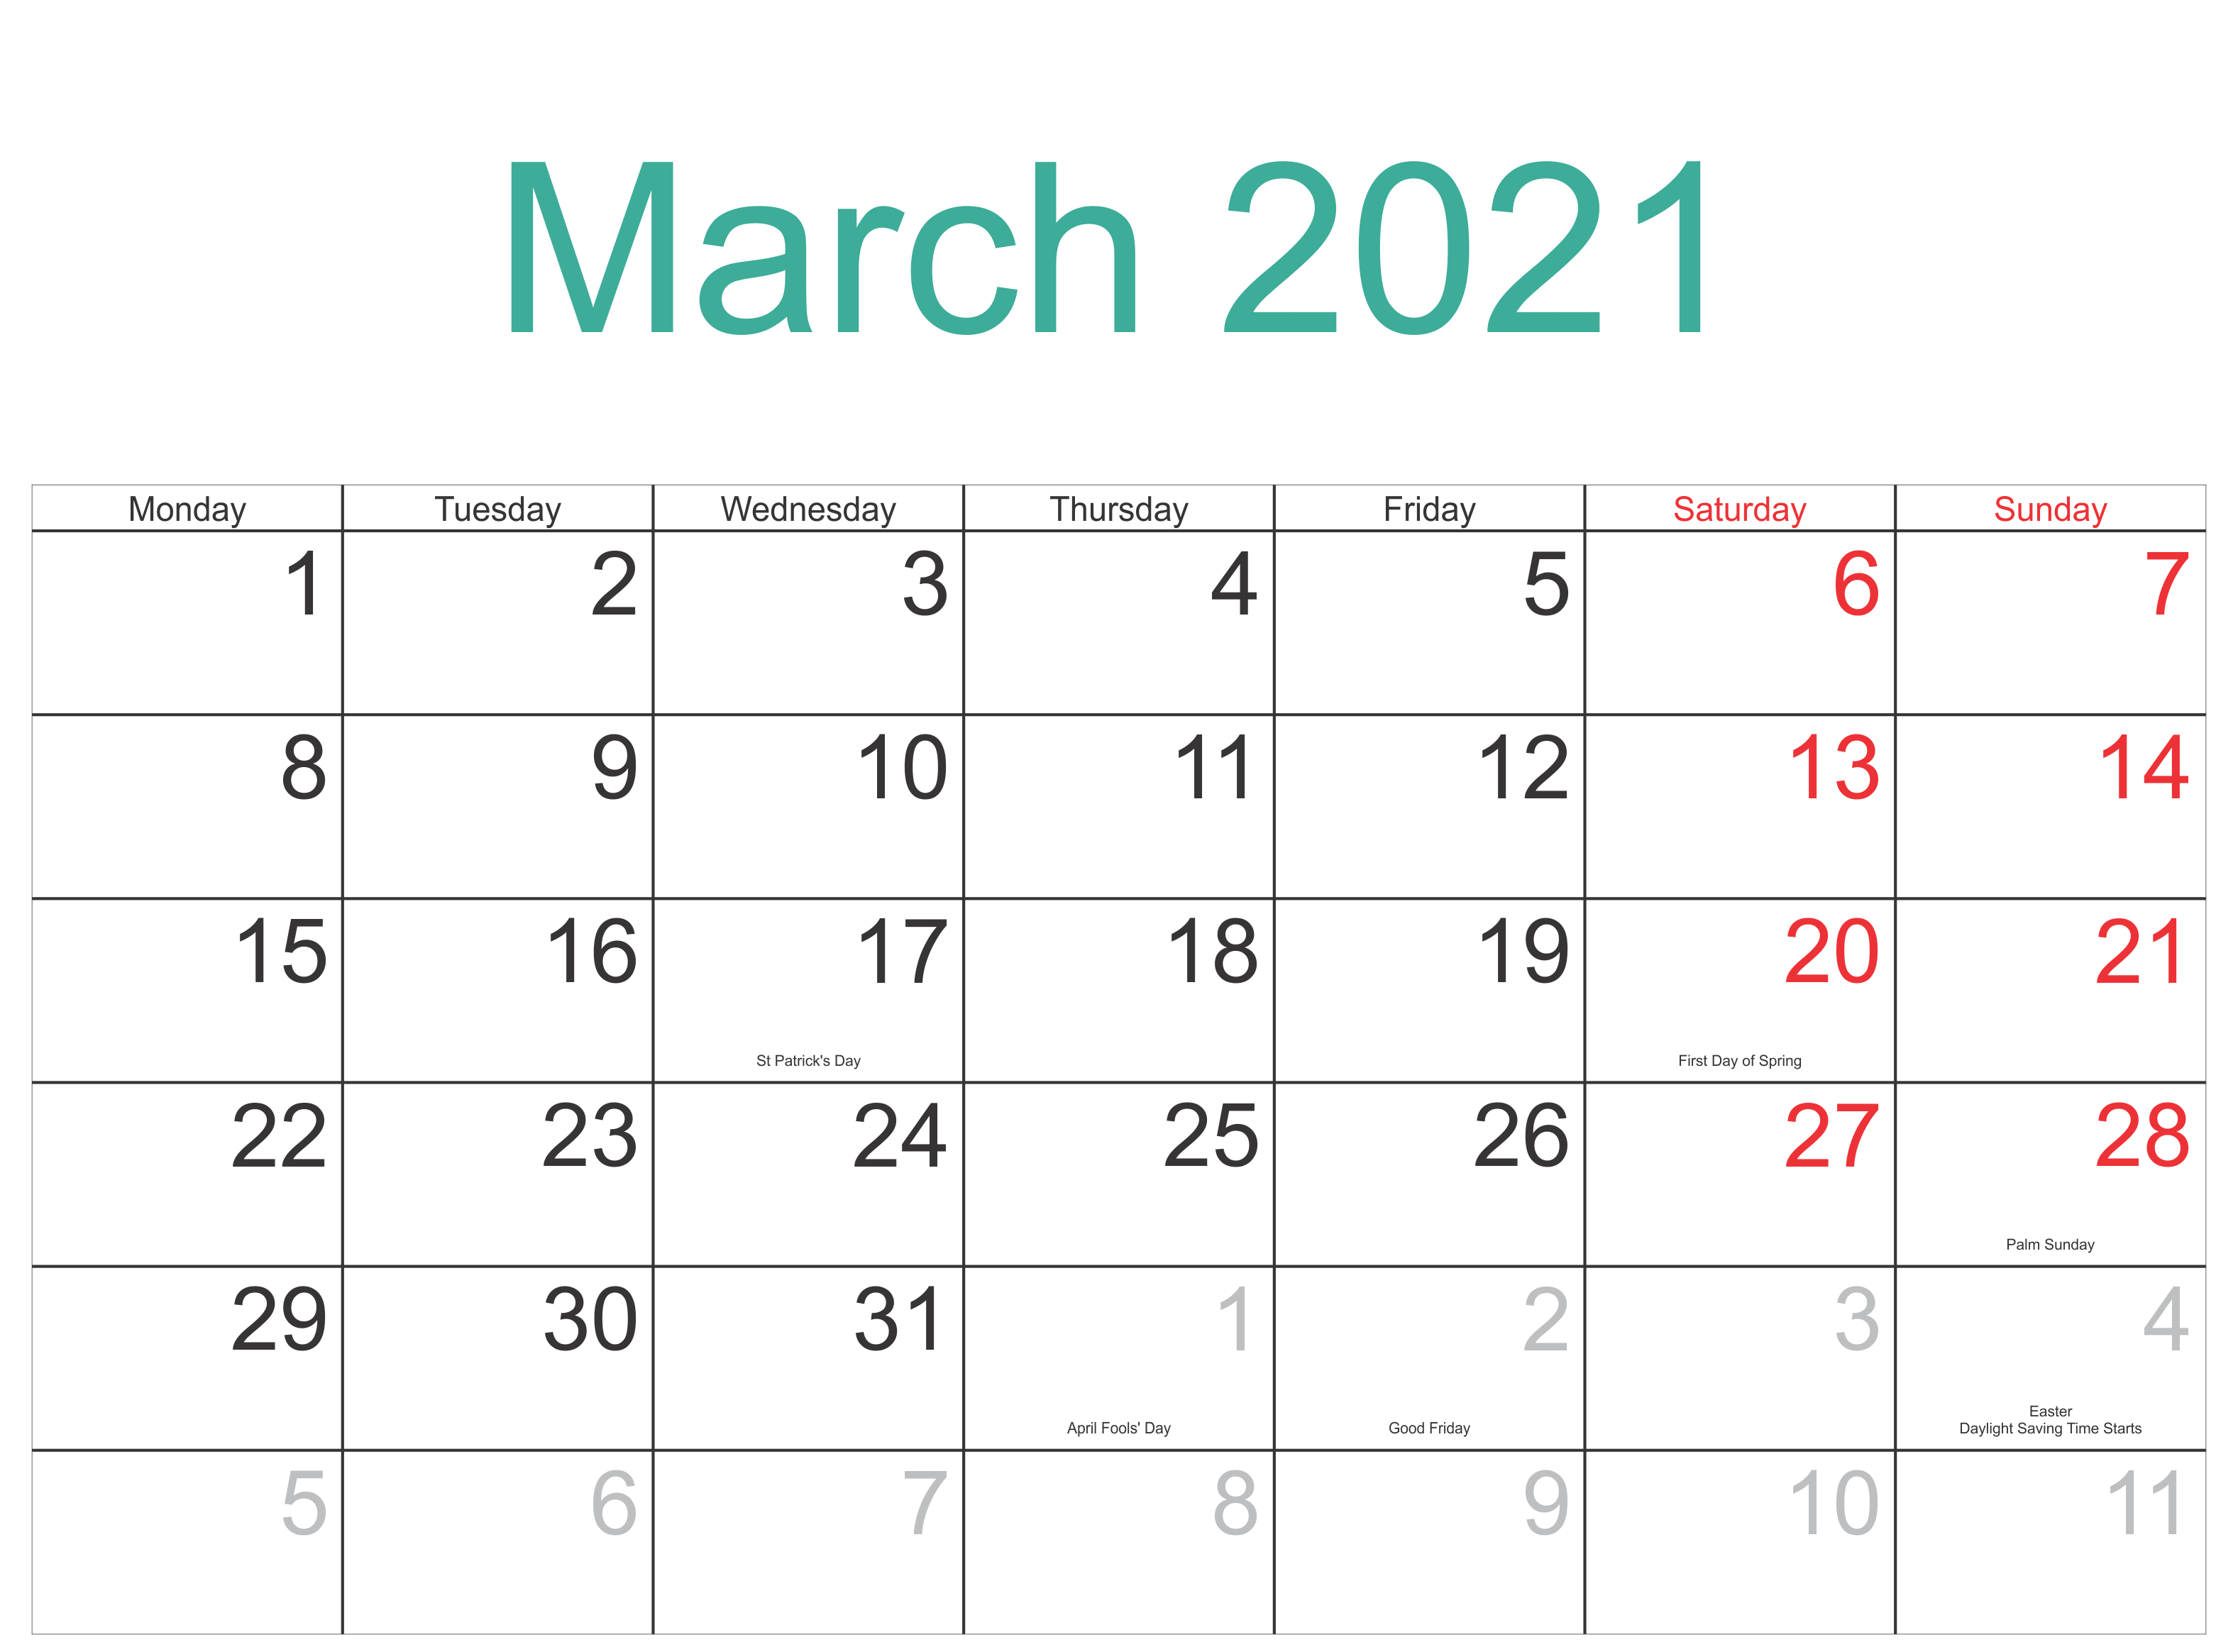 Printable March 2021 Calendar Word Template - Printable With March Holidays 2021 Calendars